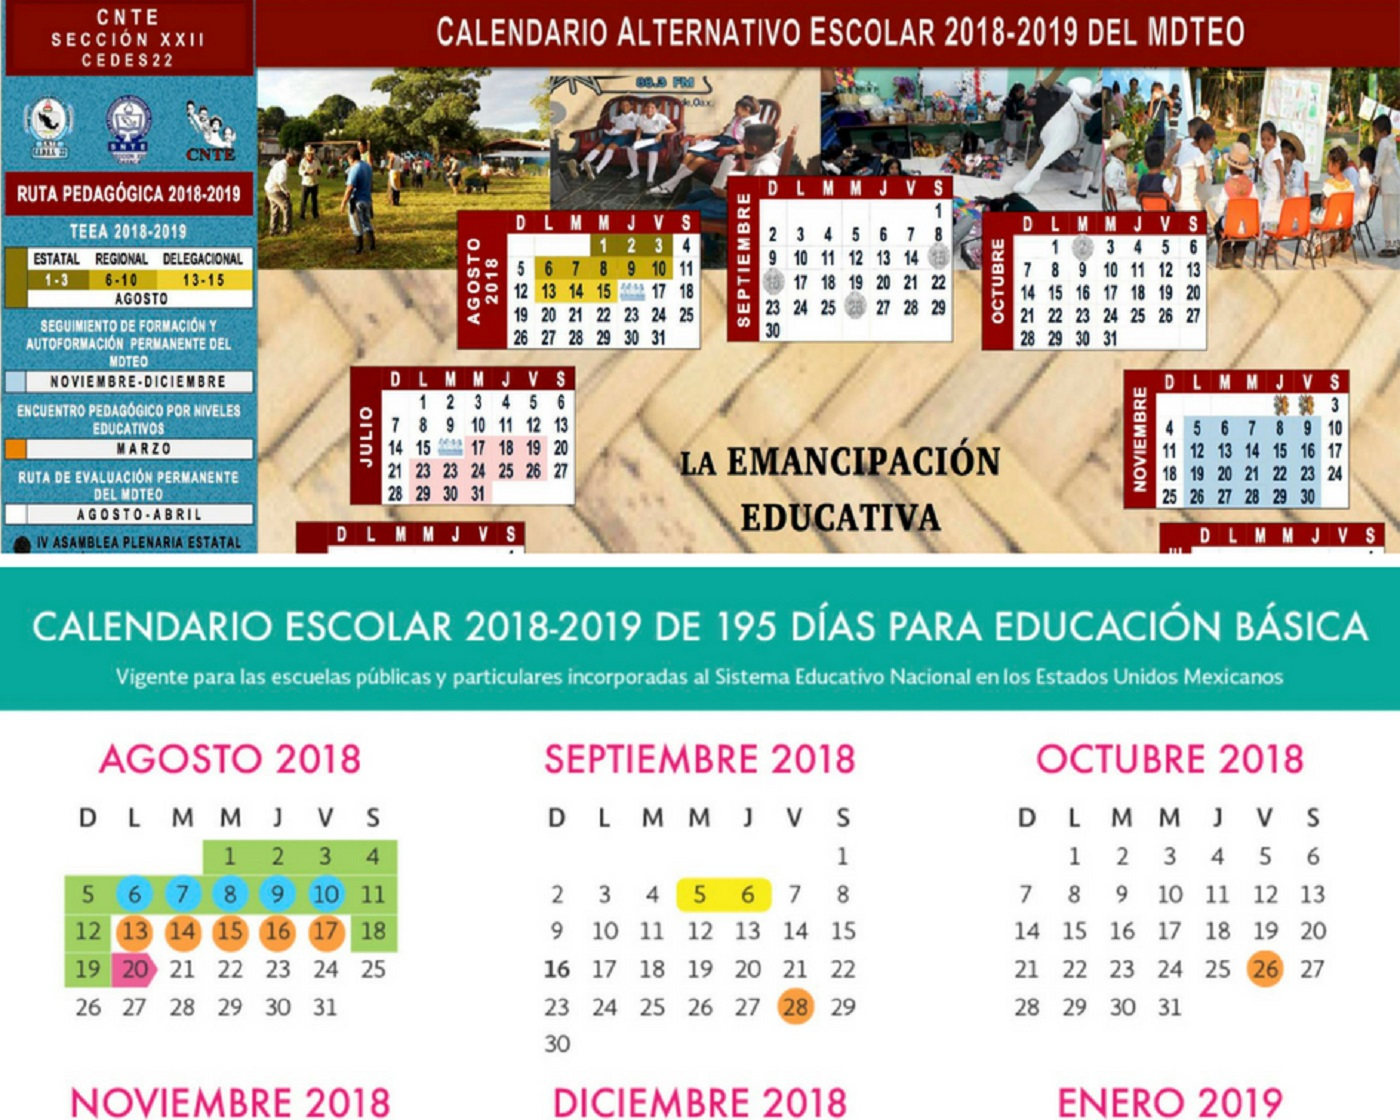 Calendario Escolar 2018 Panama.Va Seccion 22 Con Calendario Escolar Alternativo Compromete